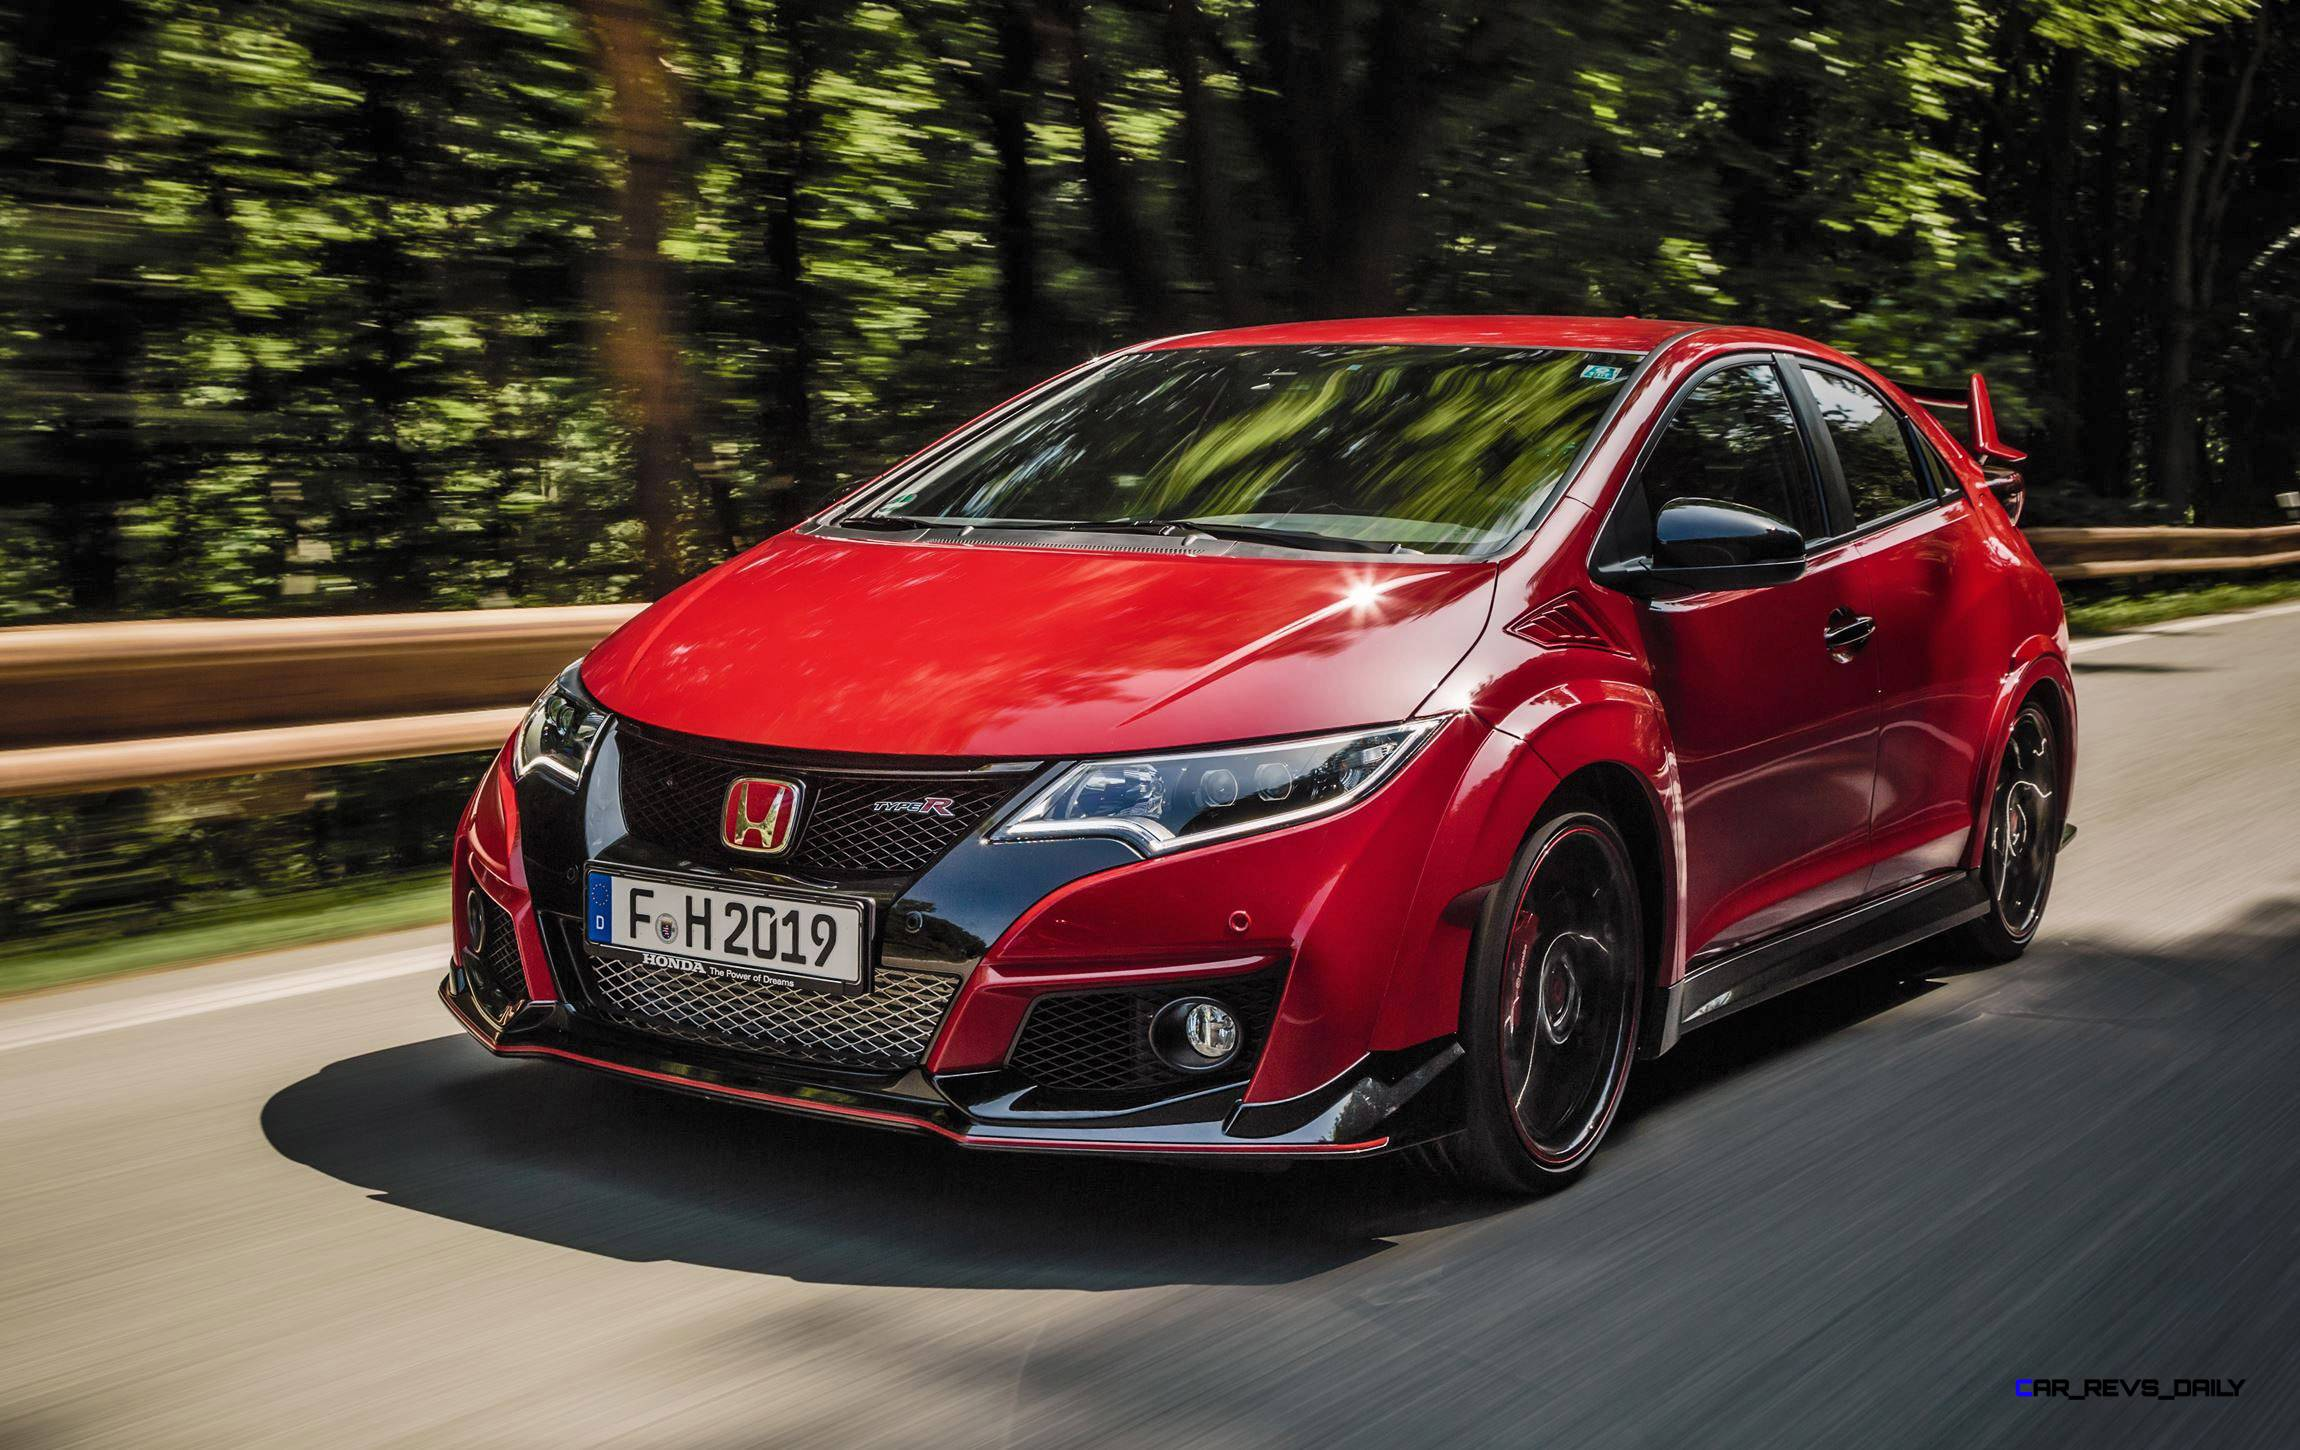 2015 honda civic type r european dynamic launch 26. Black Bedroom Furniture Sets. Home Design Ideas